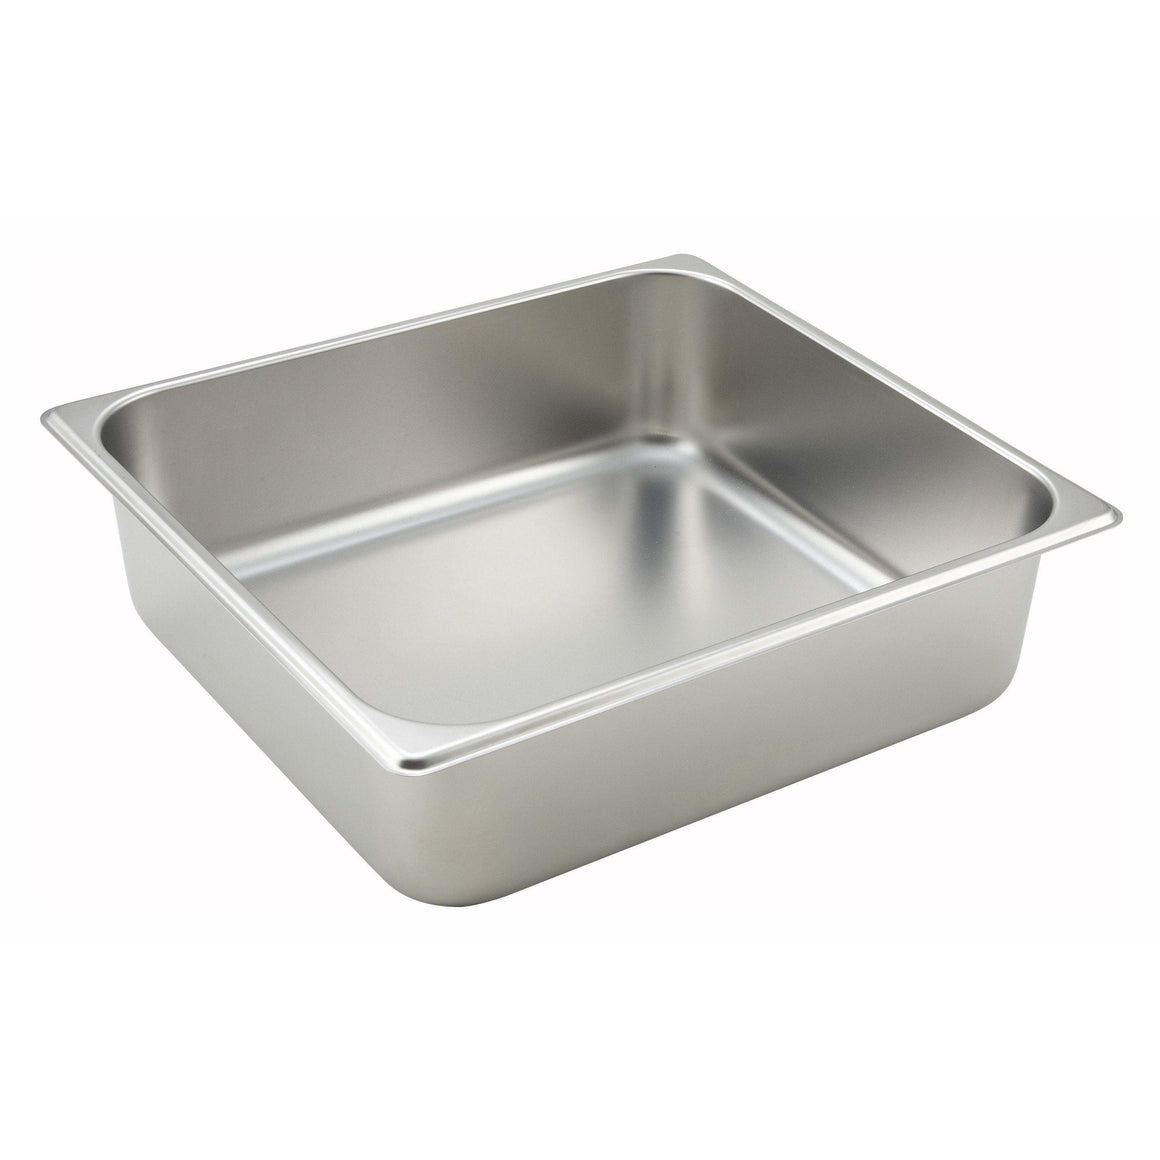 "Winco - SPTT4 - Straight-sided Steam Pan, 2/3 Size, 4"", 25 Ga Stainless Steel - Steam Table"